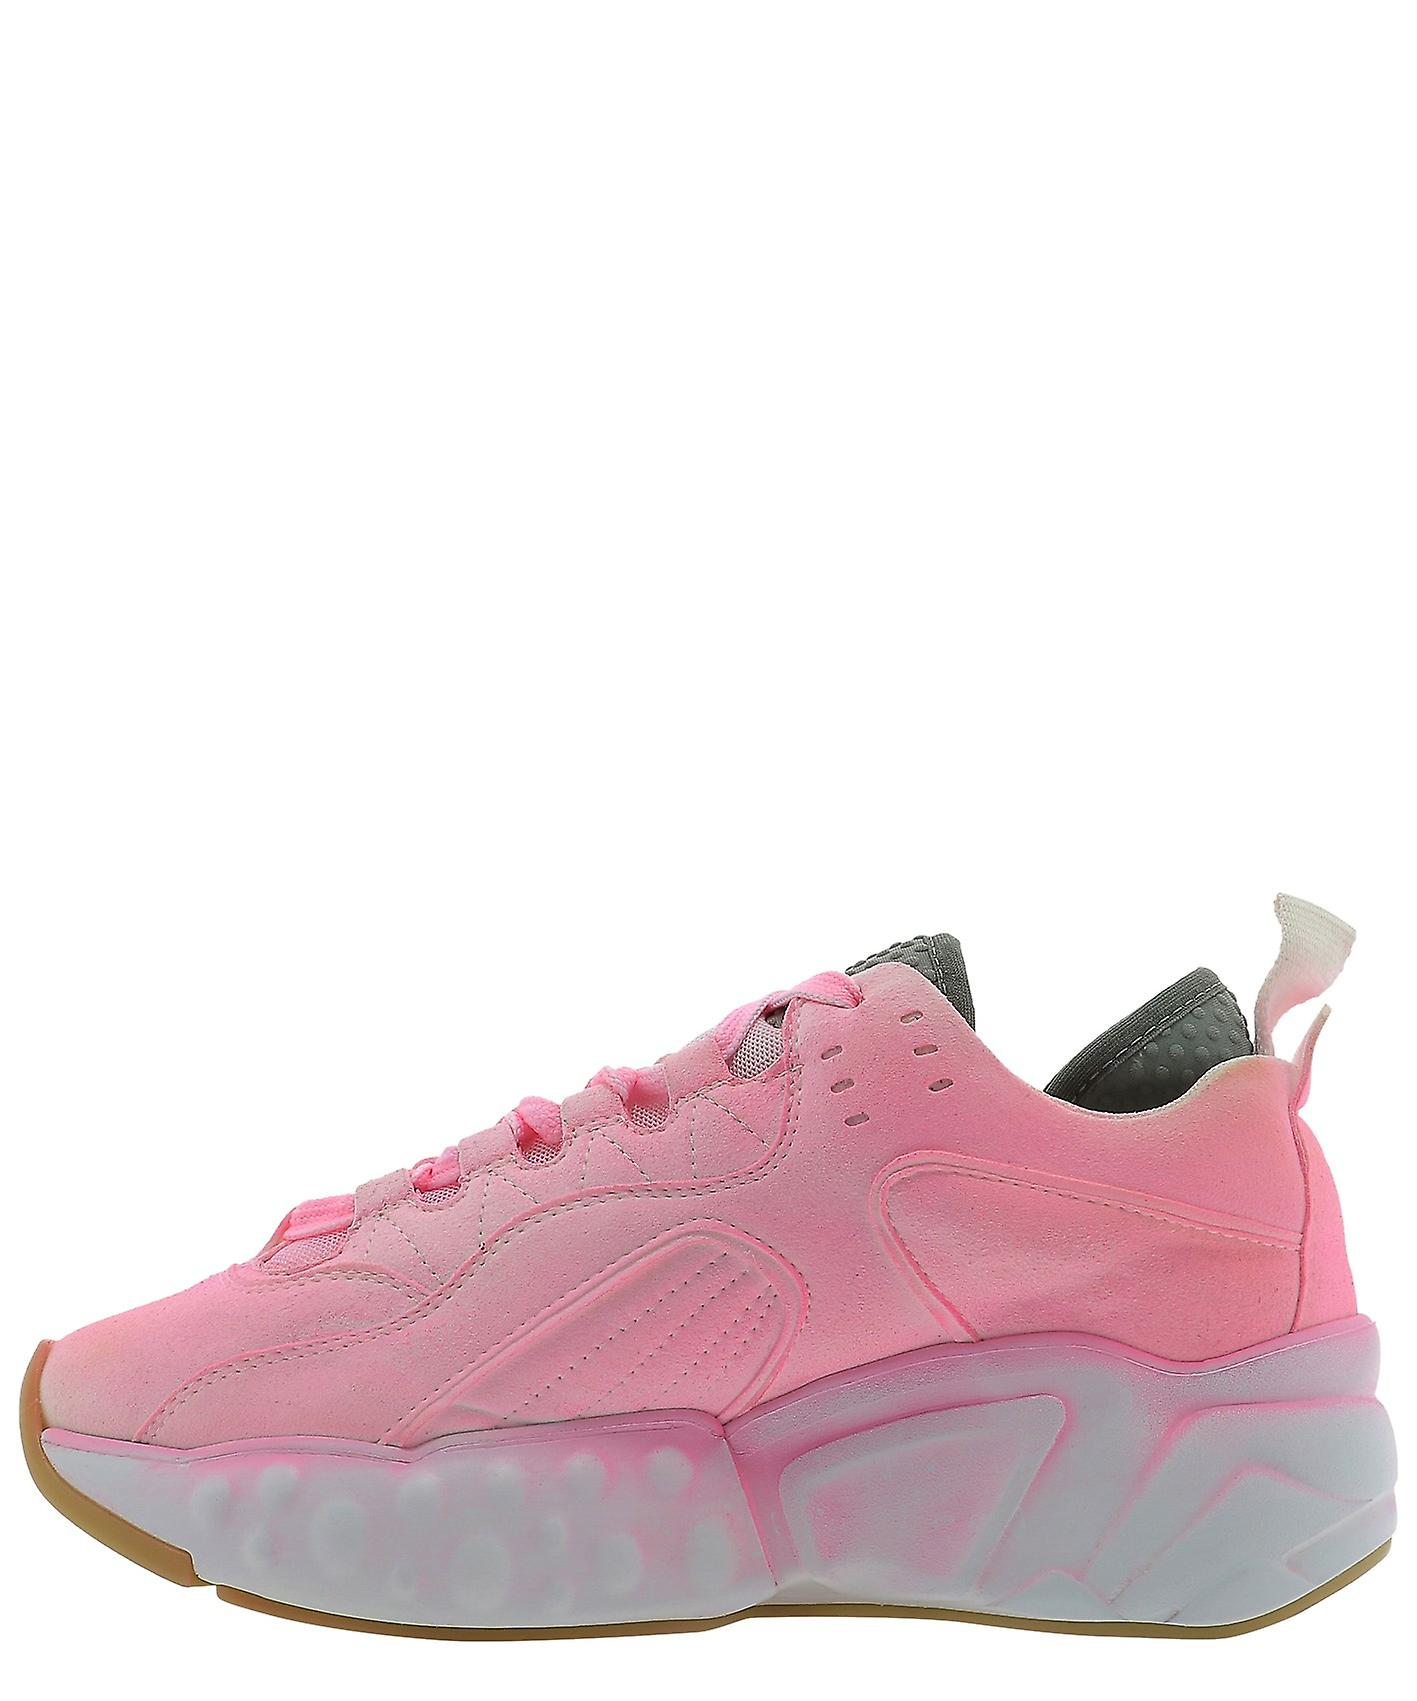 Acne Studios Ad0209fluopink Women's Pink Leather Sneakers